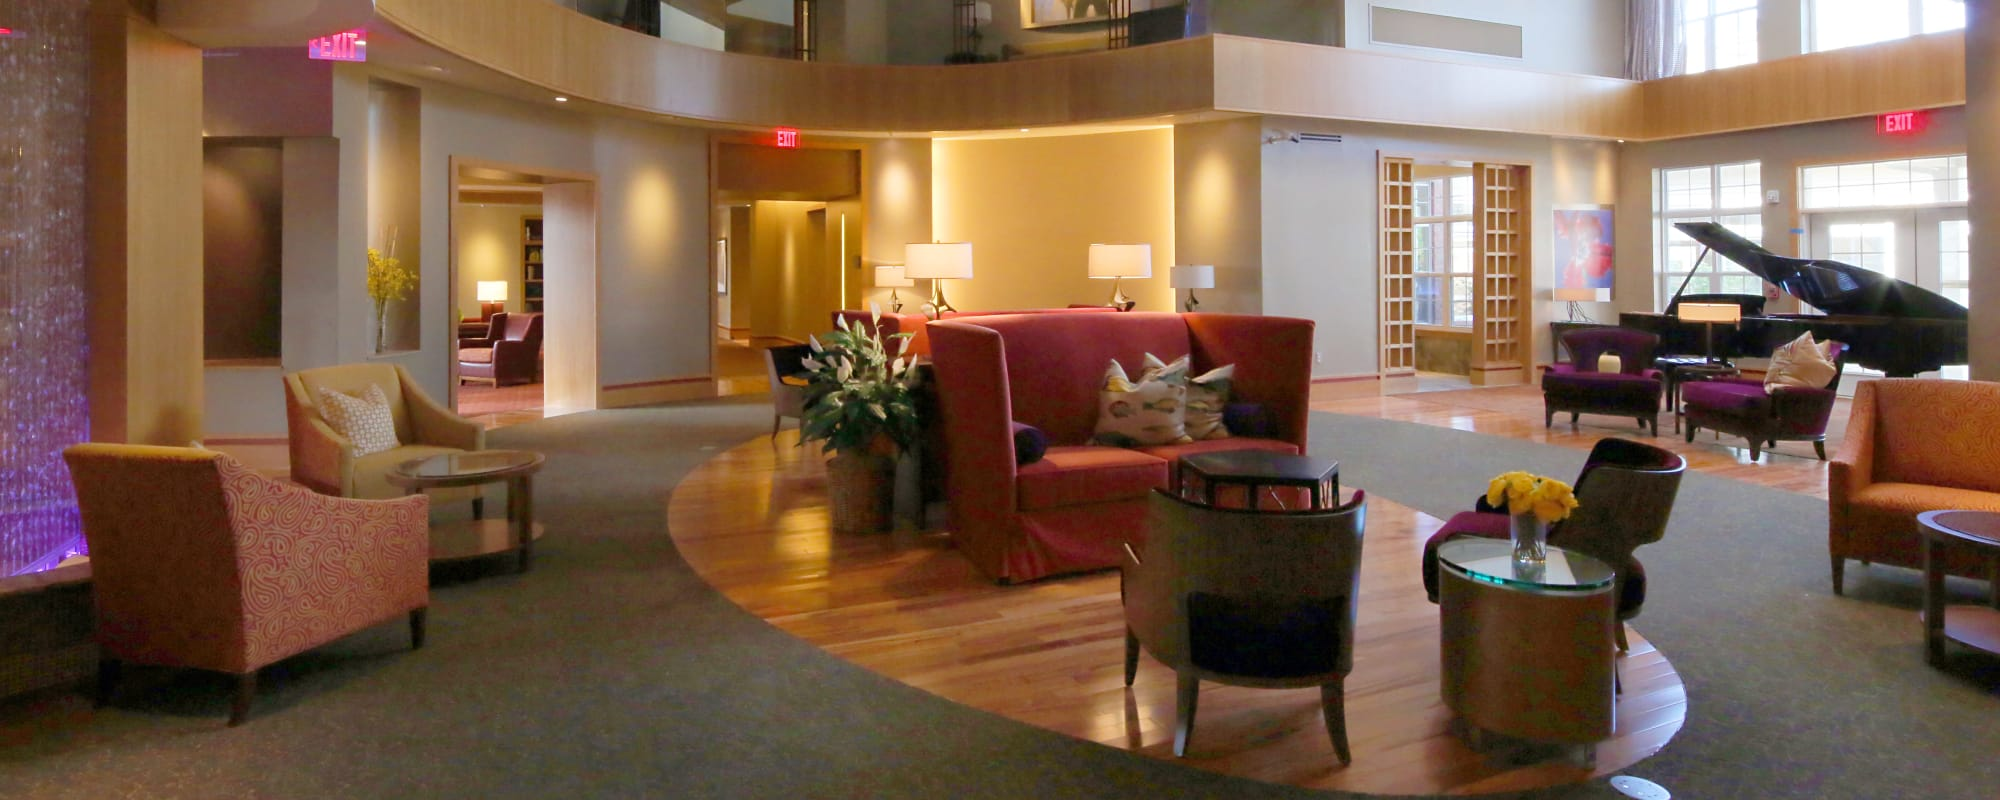 All Seasons of West Bloomfield offers senior living in West Bloomfield, Michigan